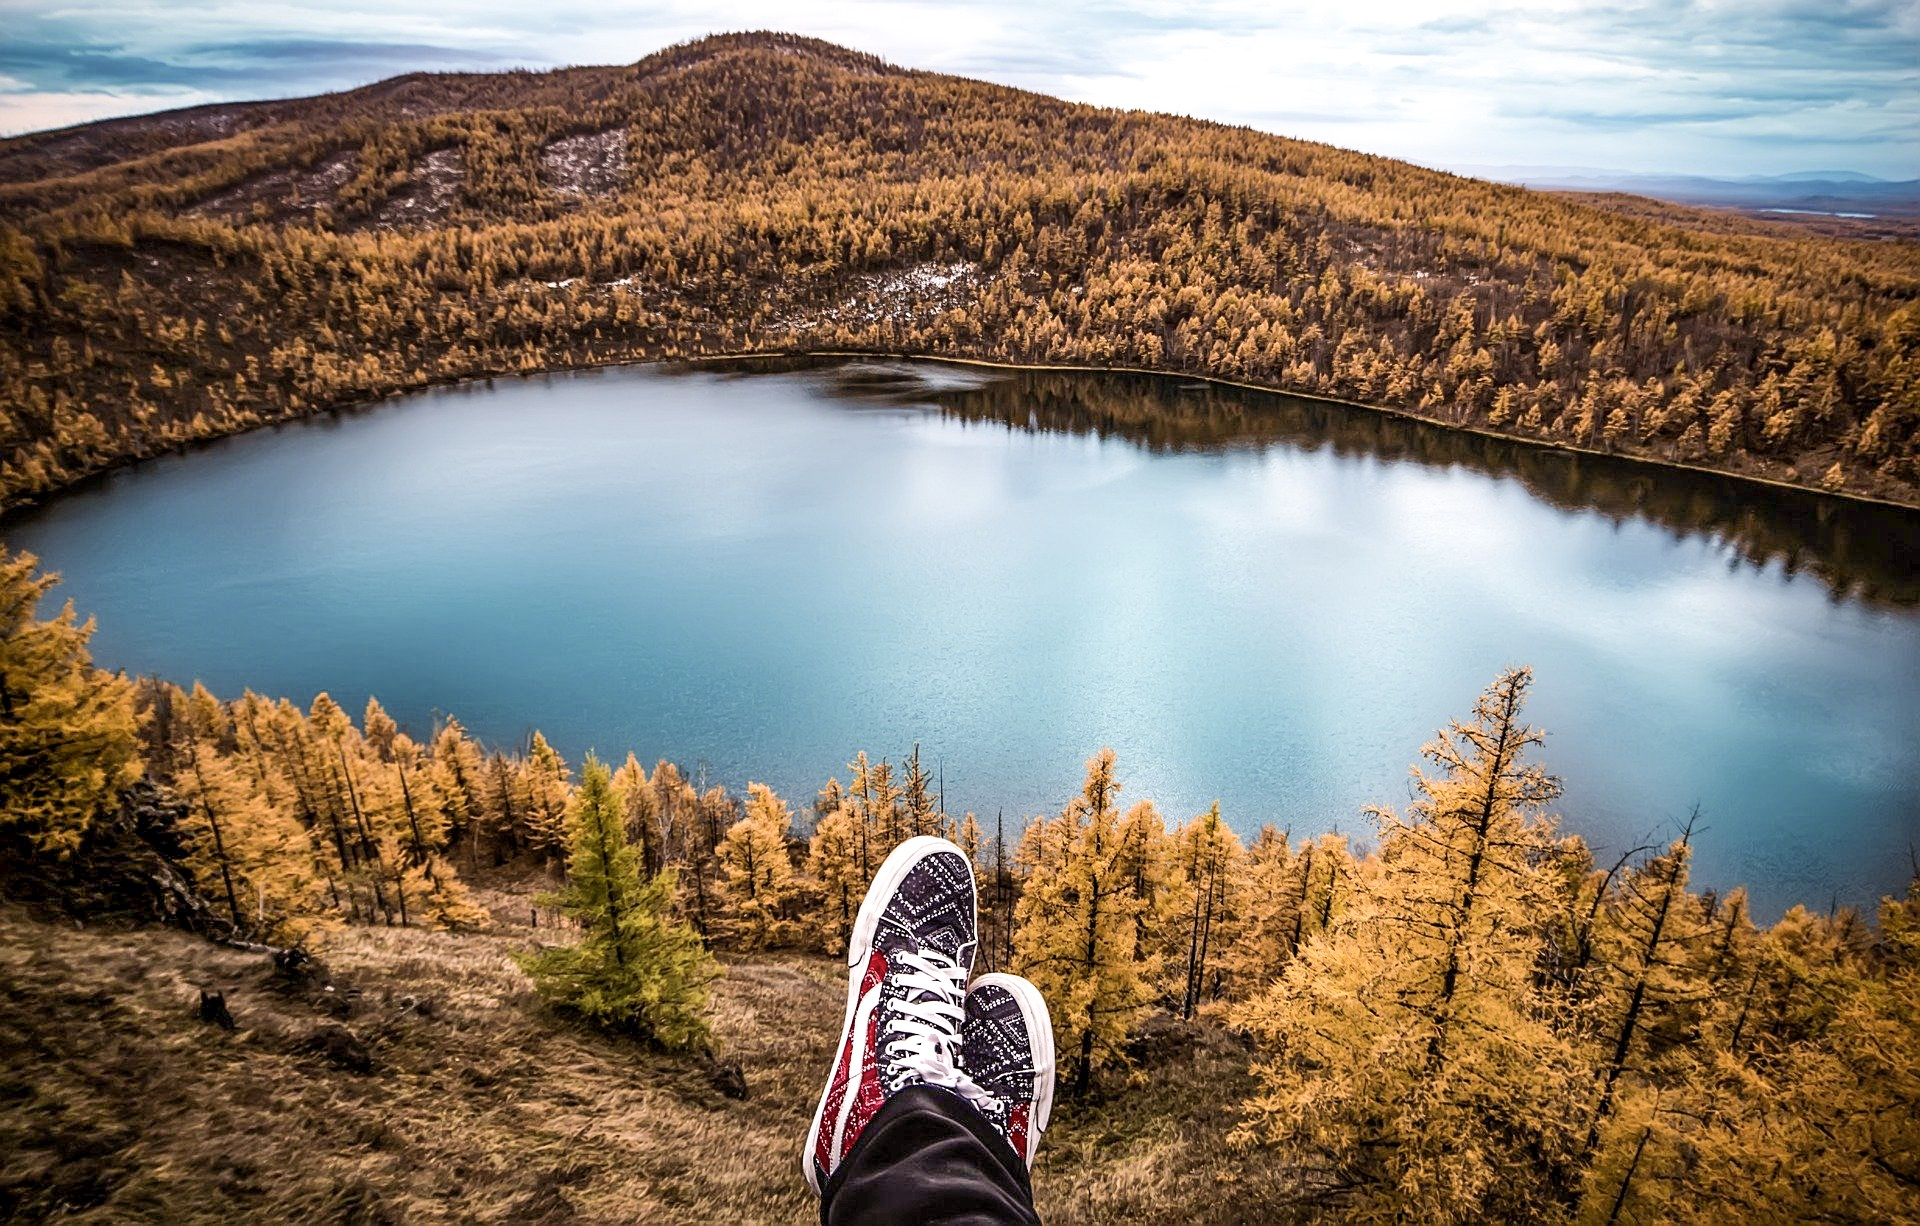 A mountain and lake view with some feet wearing trainers. Why I decided to start a blog and travel solo